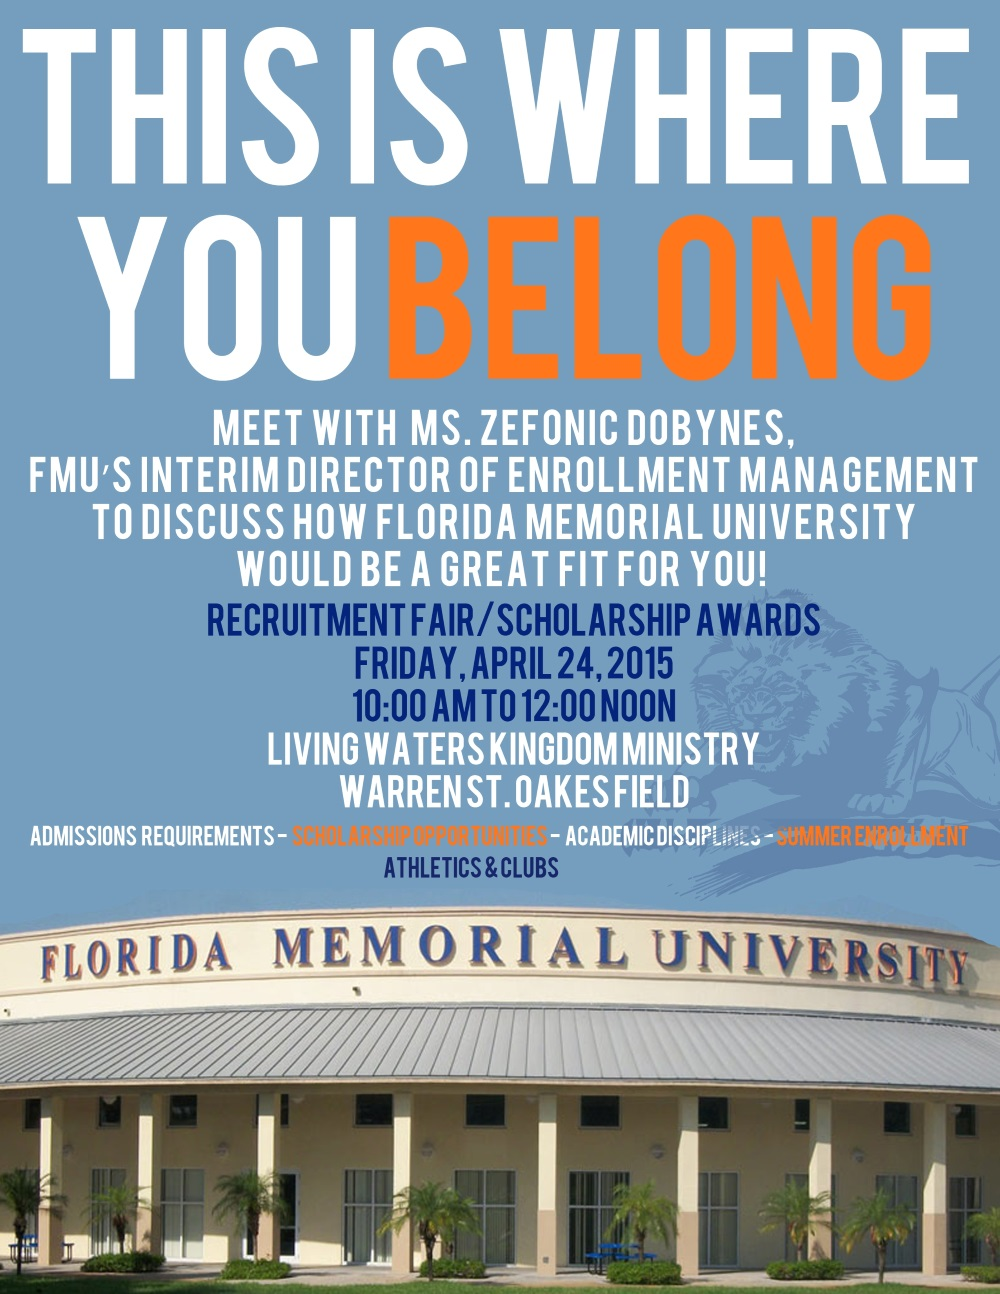 FMU - requitment fair